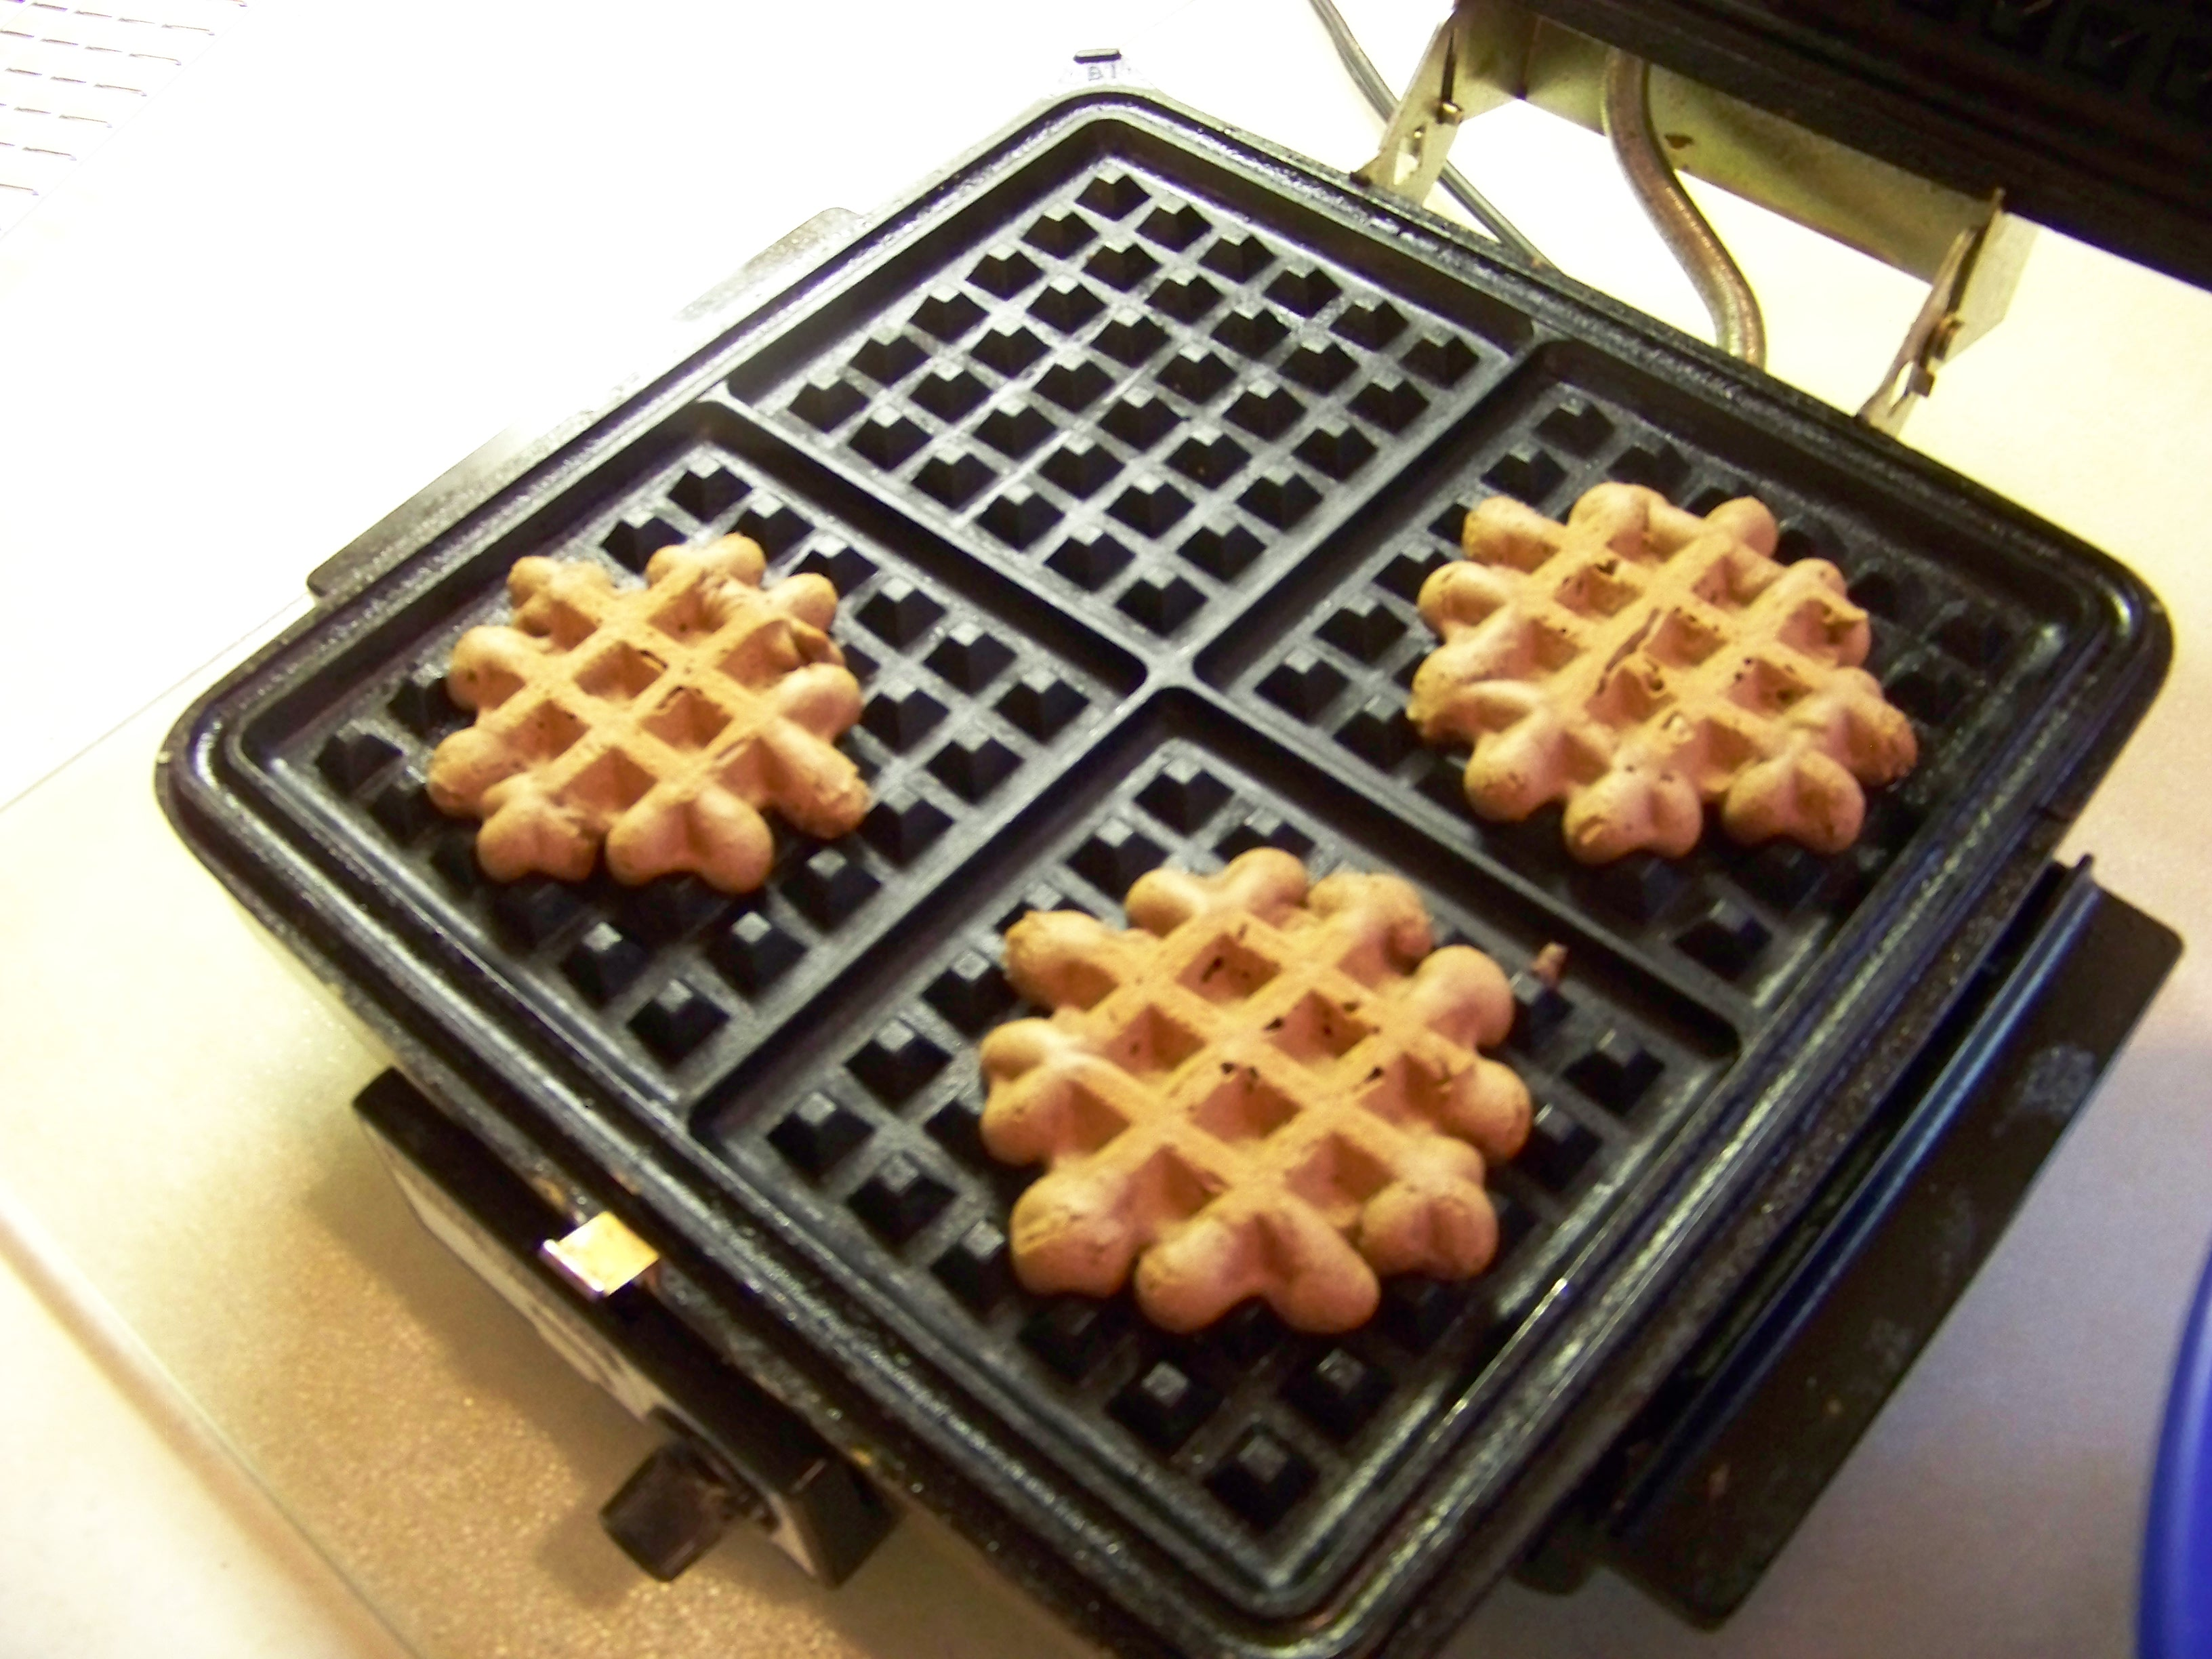 Baking cookies in your oven is fine and all, but if you want to turn out some tasty cookies in a very short time, consider turning to your trusty waffle iron.